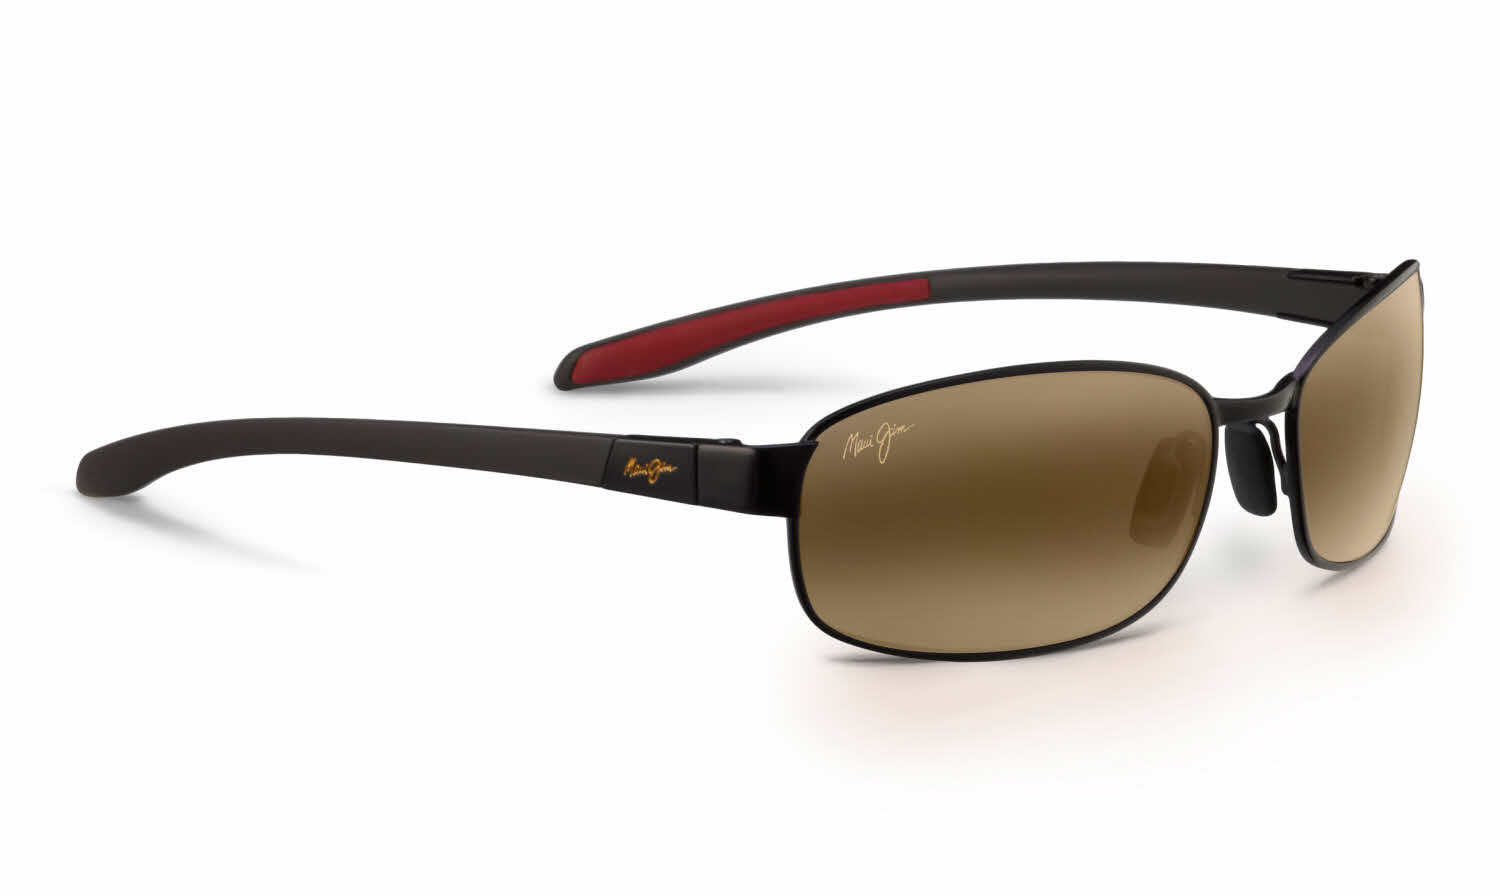 Maui Jim Salt Air-741 Prescription Sunglasses